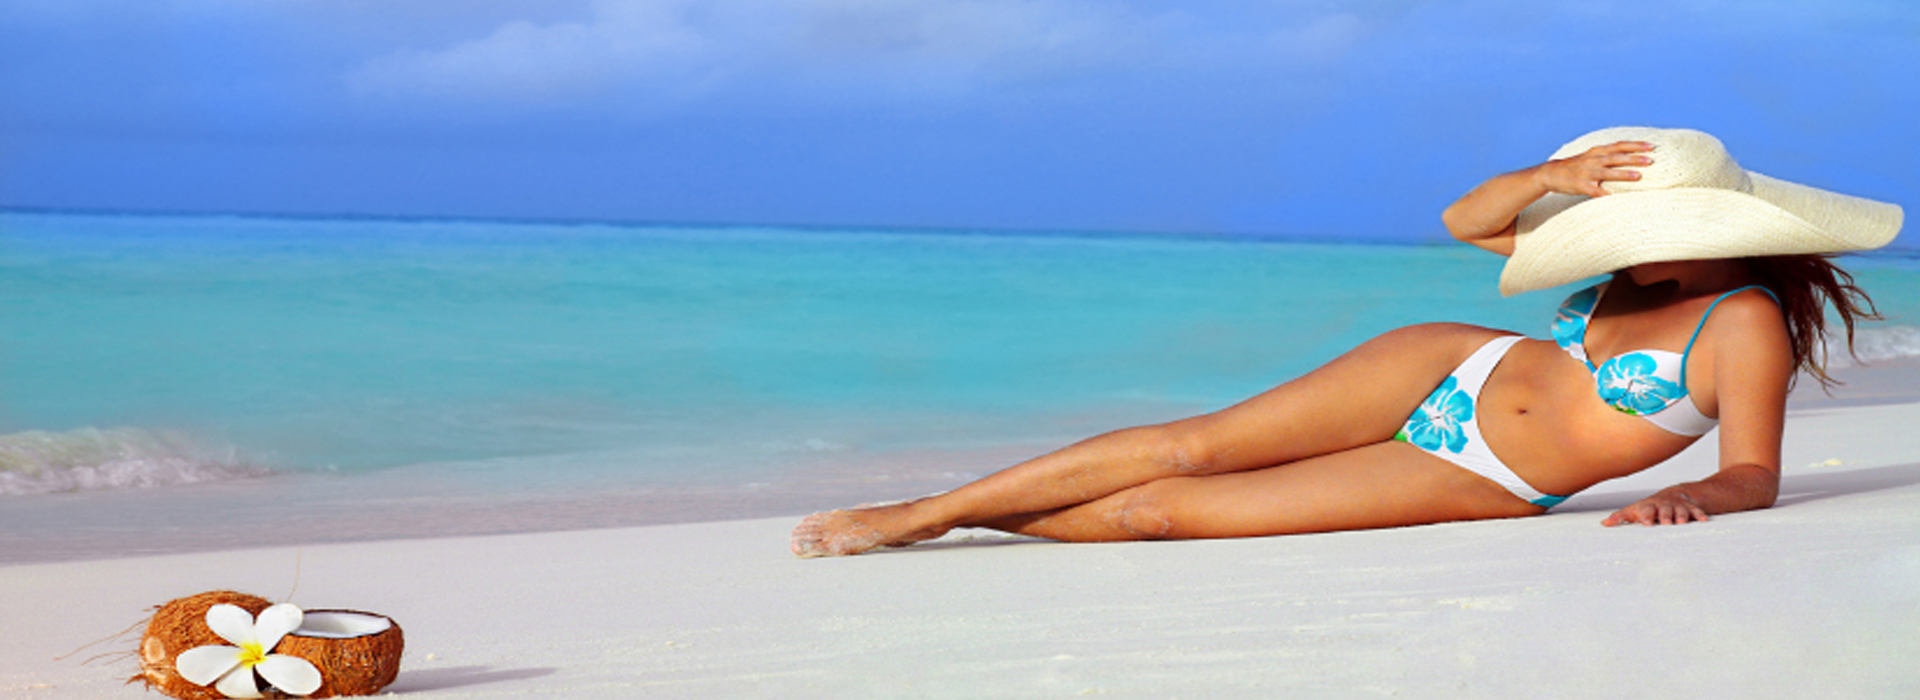 Picture of a woman lying on the sand at the beach.